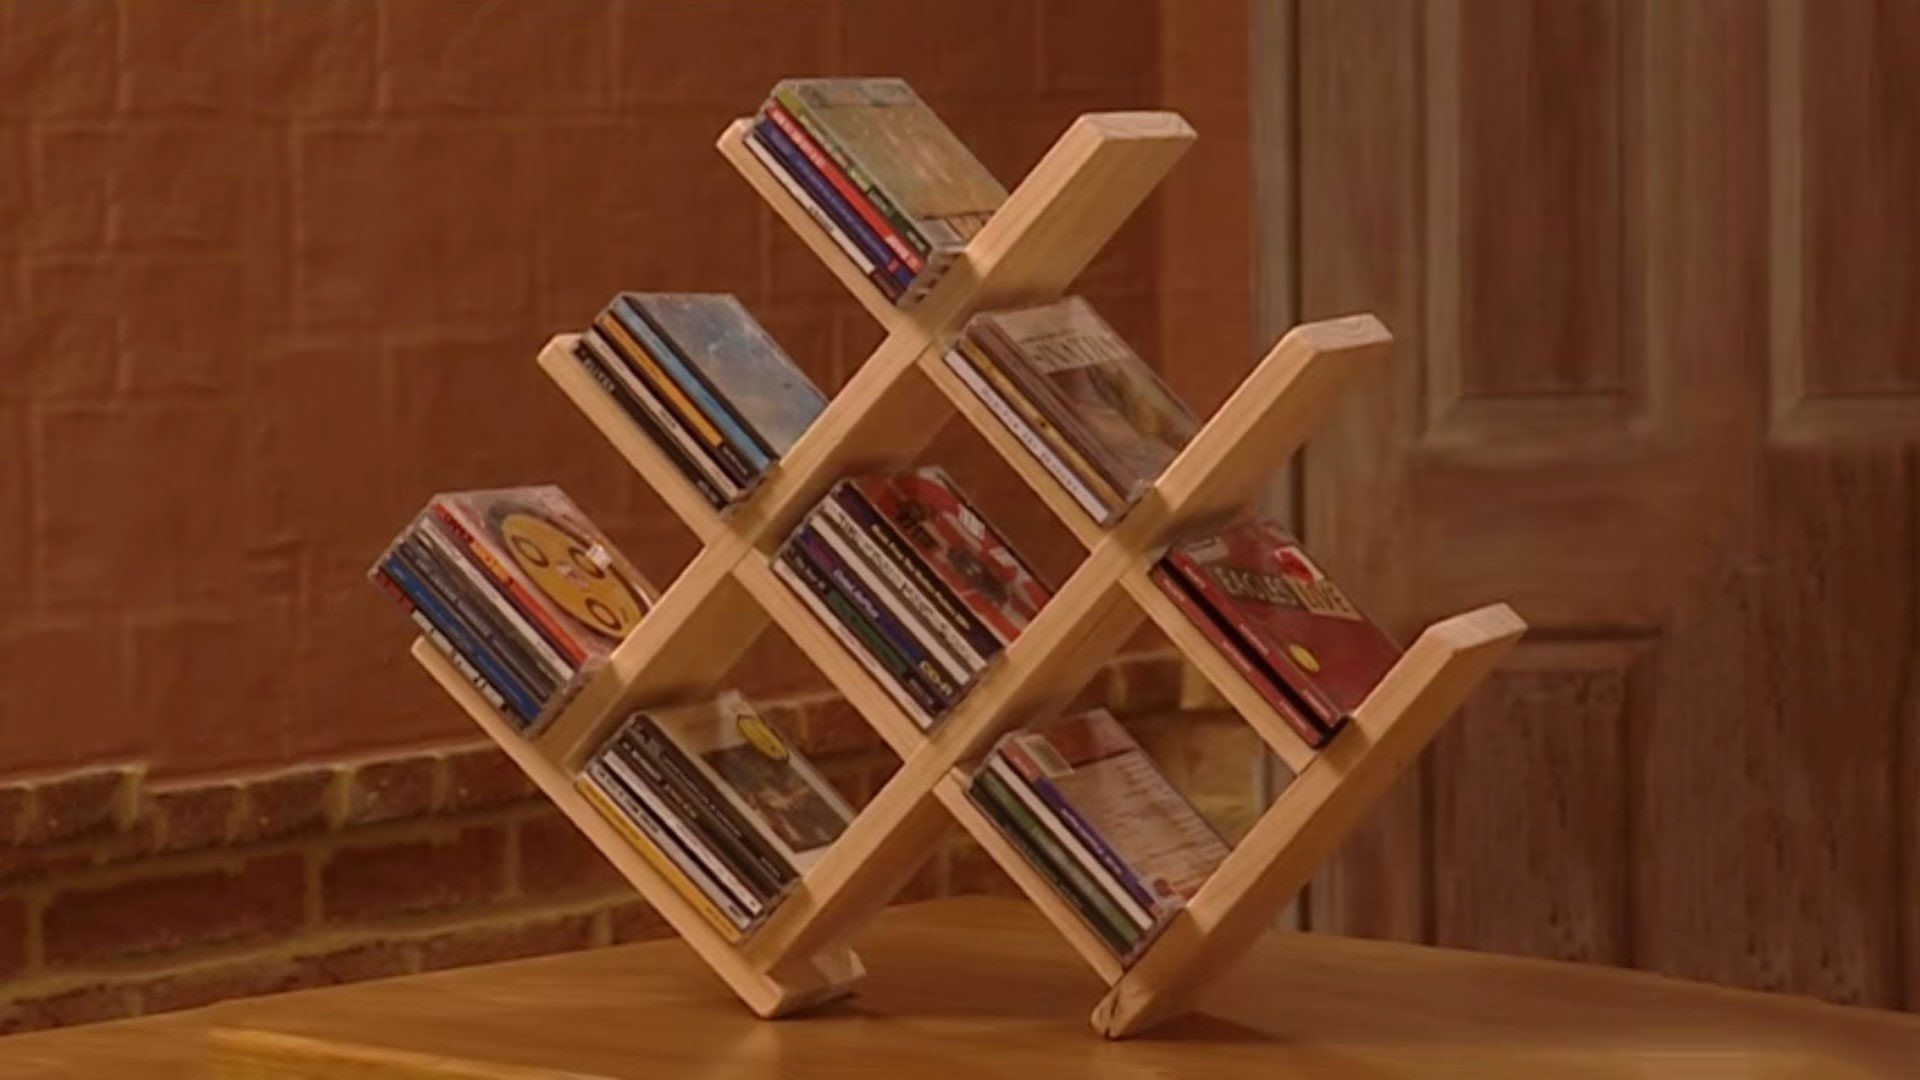 How to Build a Wooden CD Rack. How to Build a Wooden CD Rack   carpinteria   Pinterest   Dvd rack